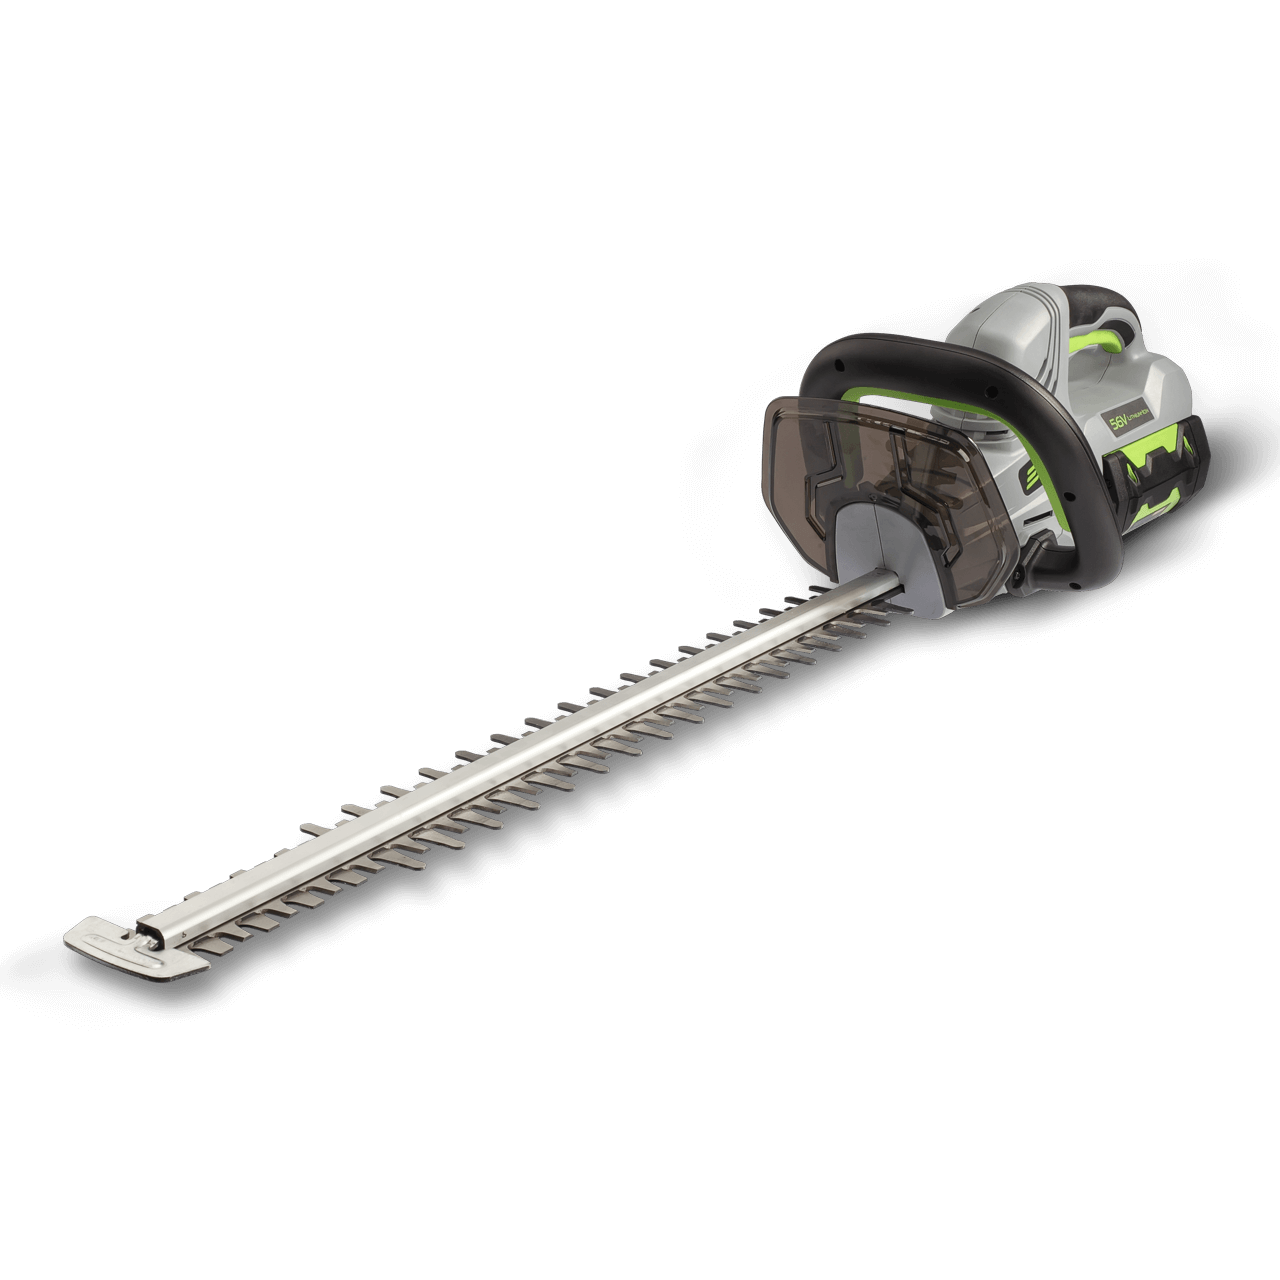 Power Hedge Trimmer : Ht e cm hedge trimmer ego power